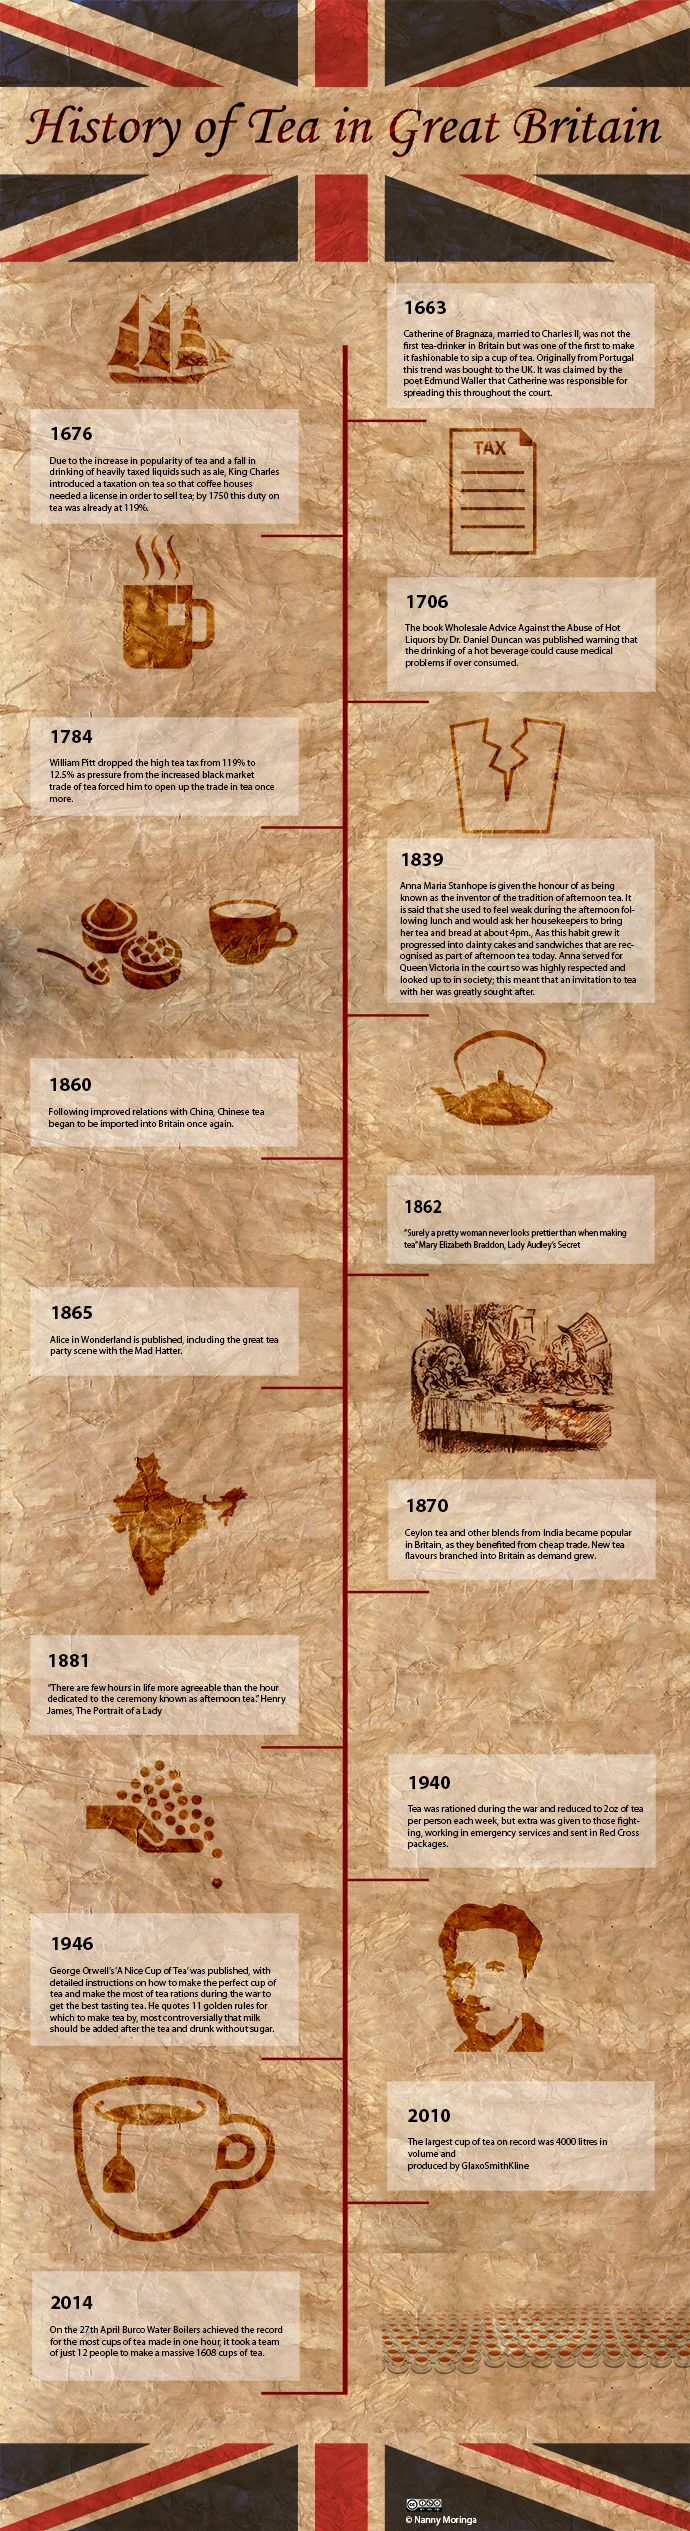 The history of Tea in Great Britain. Tea is famous for being the beverage of choice for the British. Nanny Moringa (http://www.nannymoringa.com/) has explored the history of tea in Great Britain, following its path from its introduction to Britain by the Royal Family to the creation of Afternoon Tea.